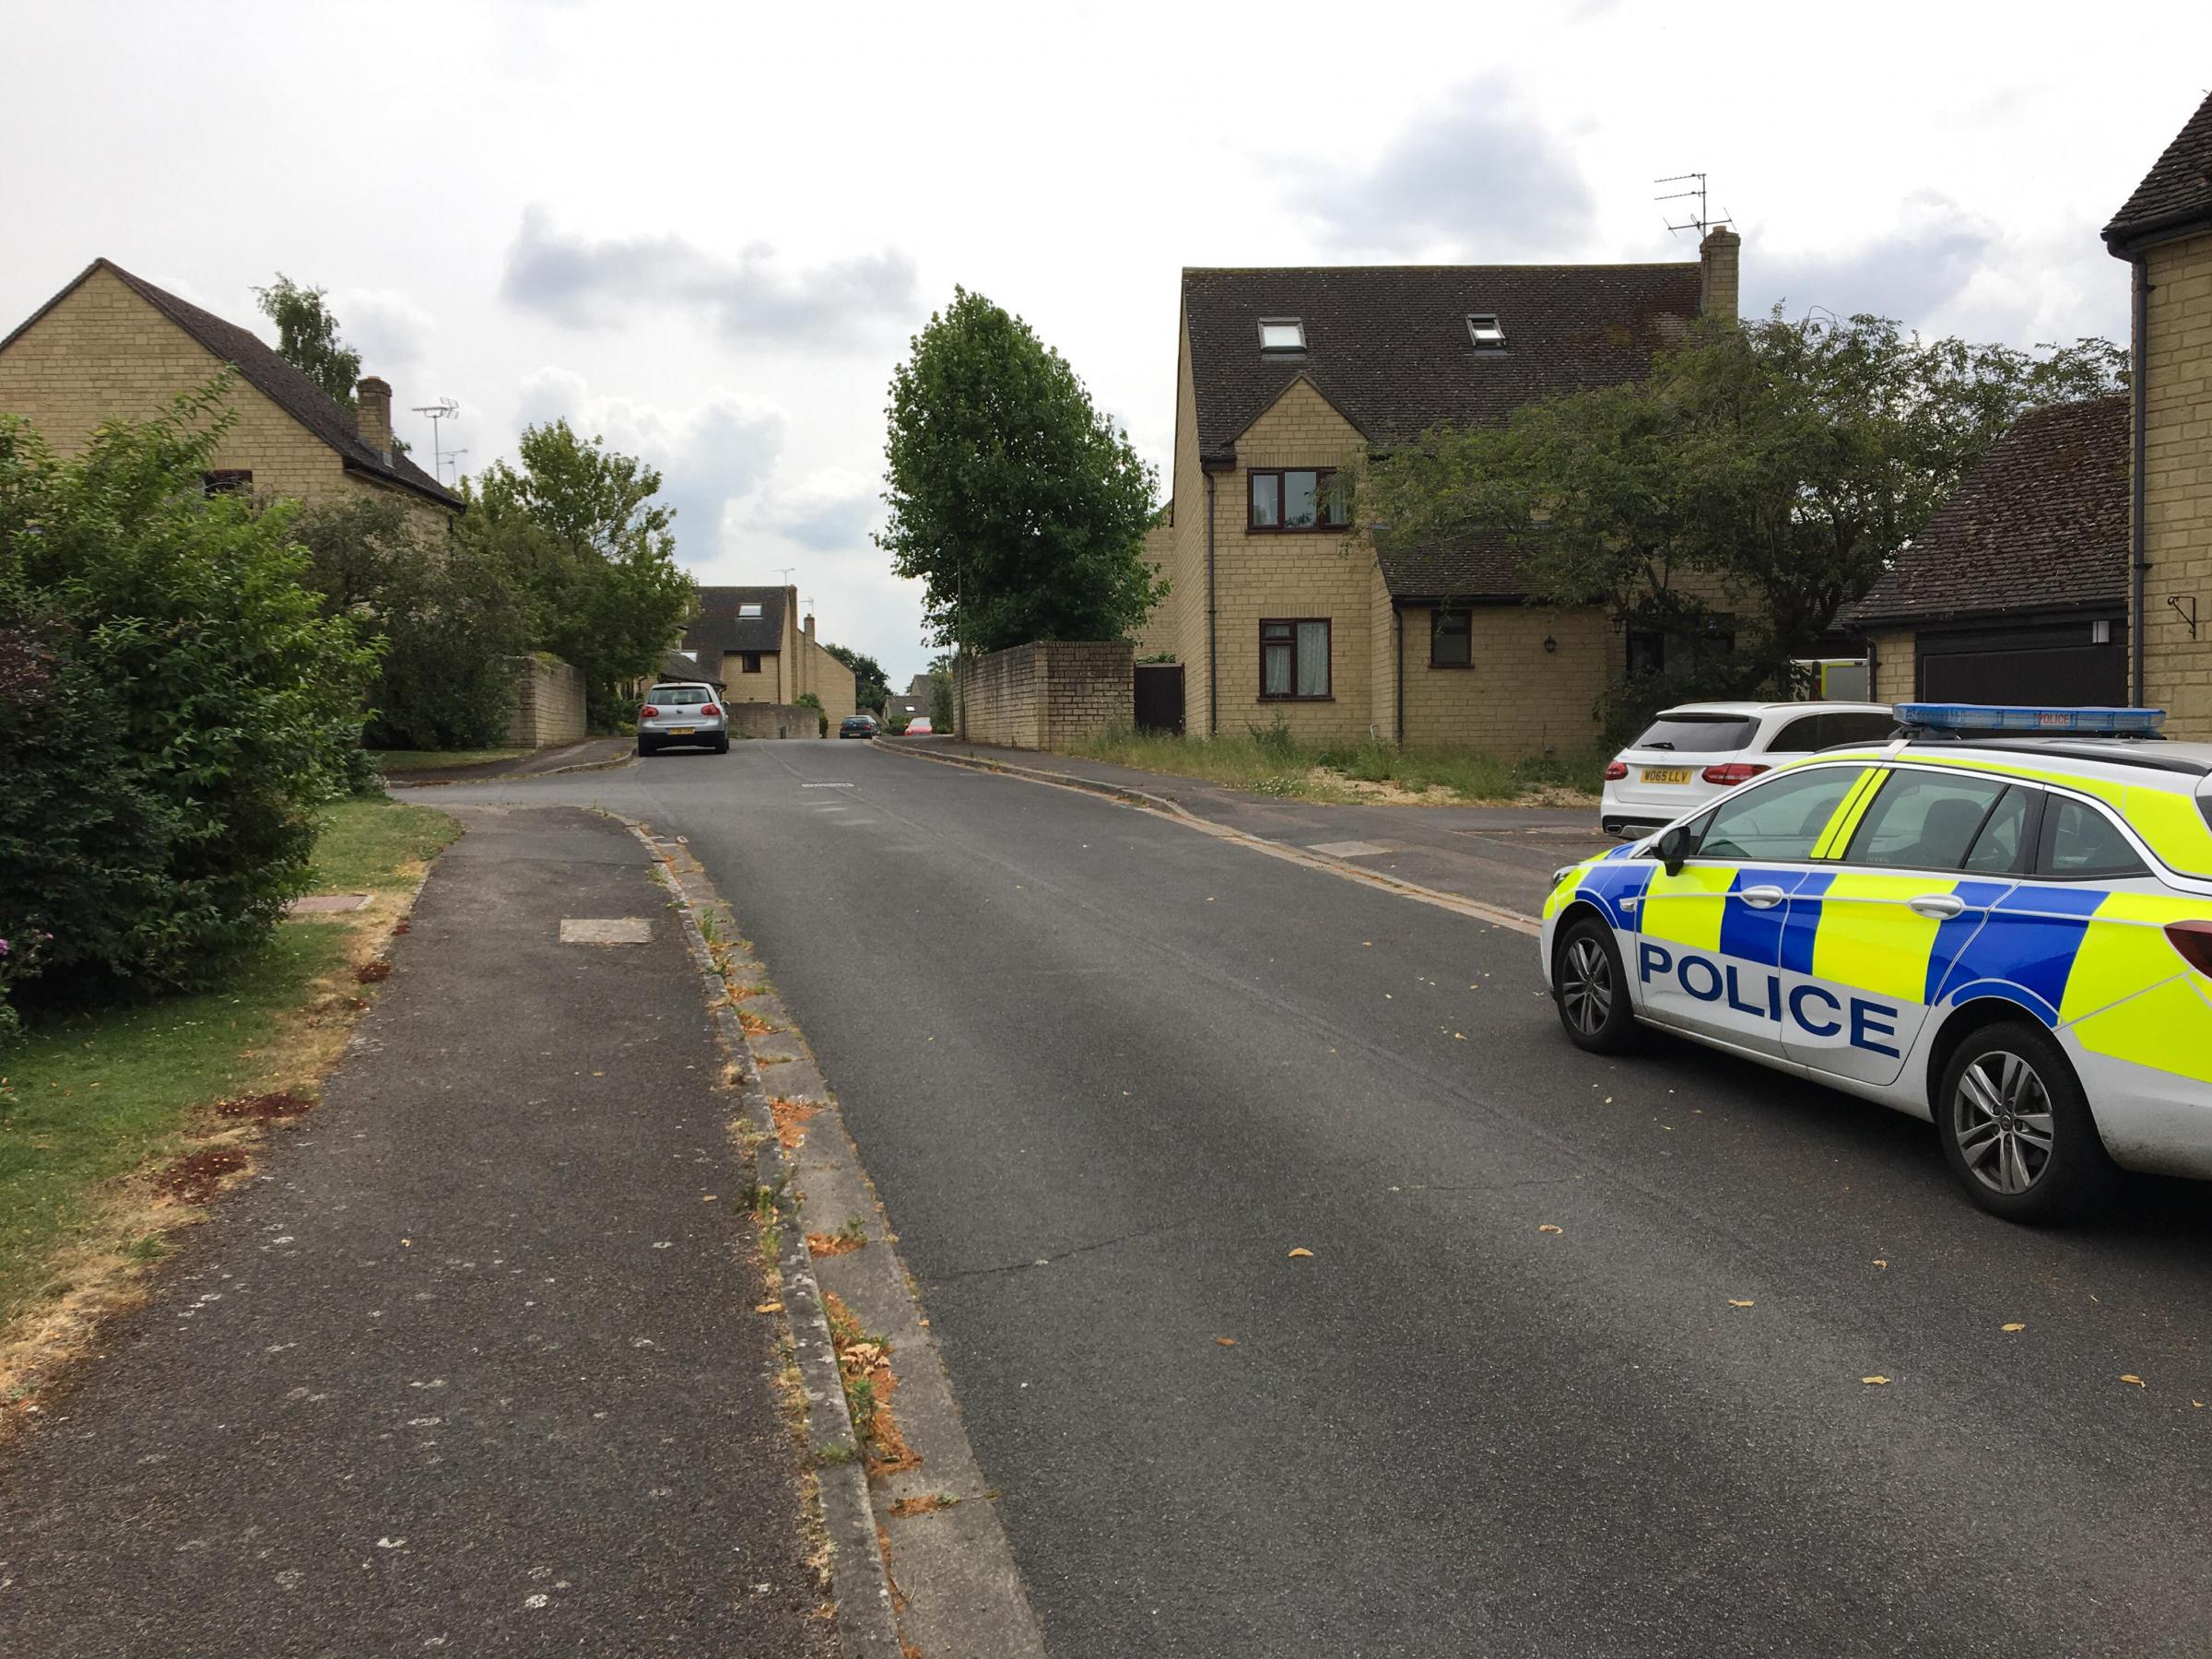 House on Newland Mill, Witney, 'repossessed after cannabis grown'